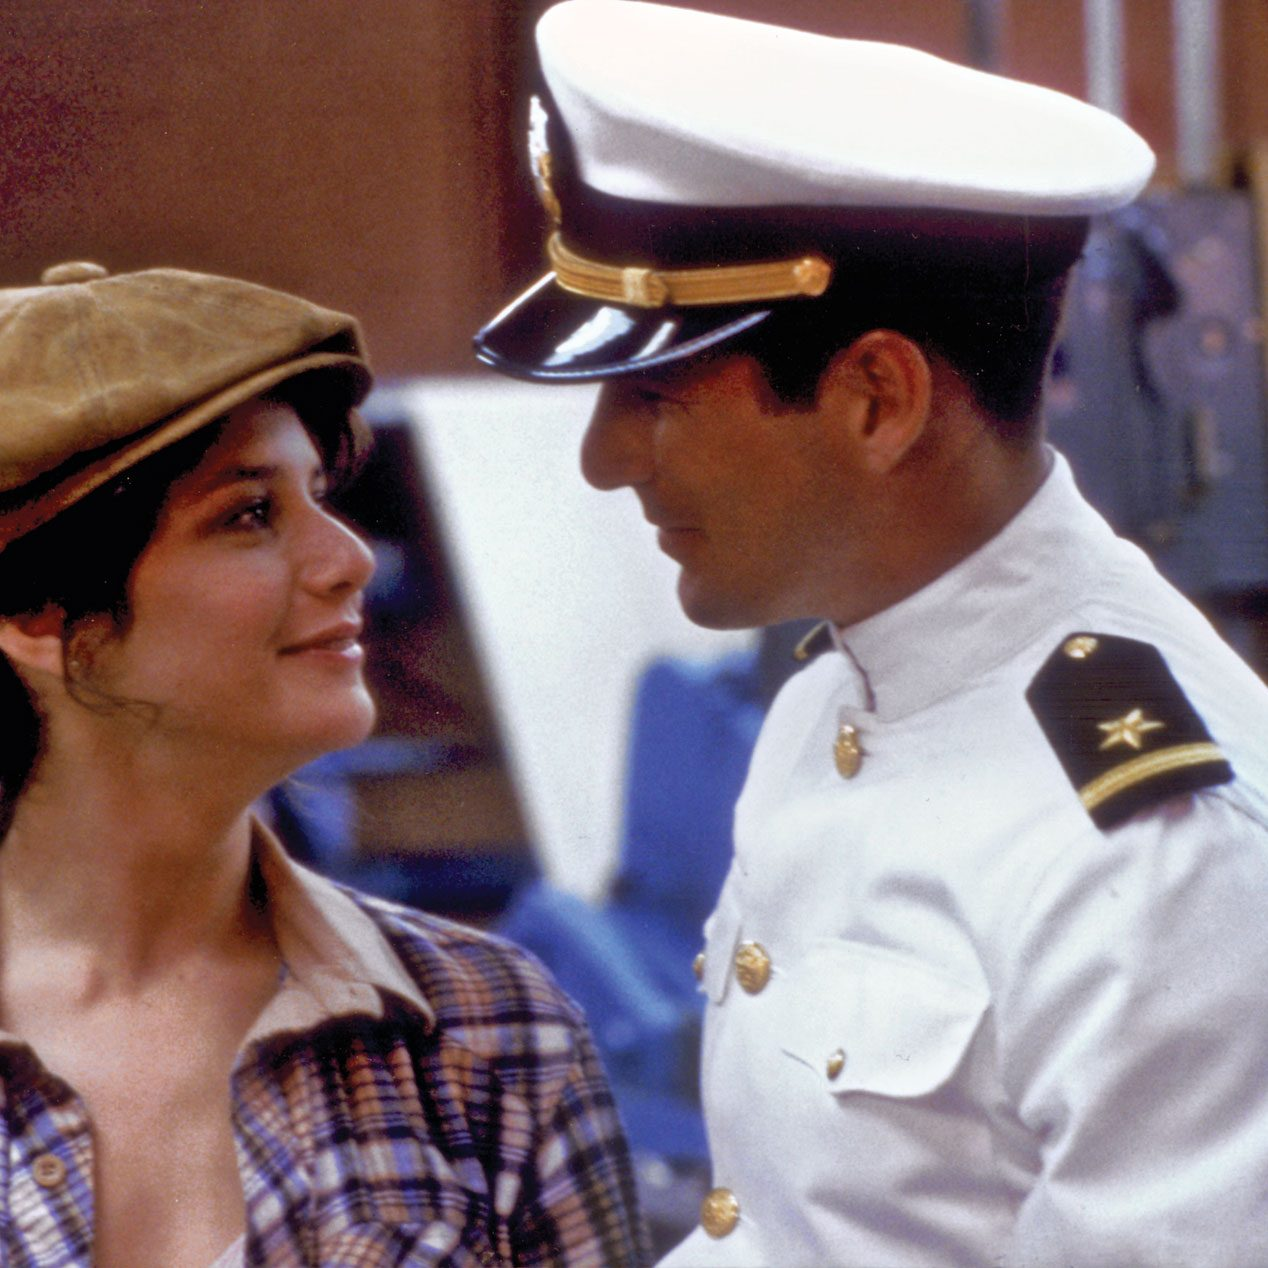 Debra Winger Richard Gere An Officer and e1579609557281 20 Things You Might Not Have Realised About An Officer And A Gentleman